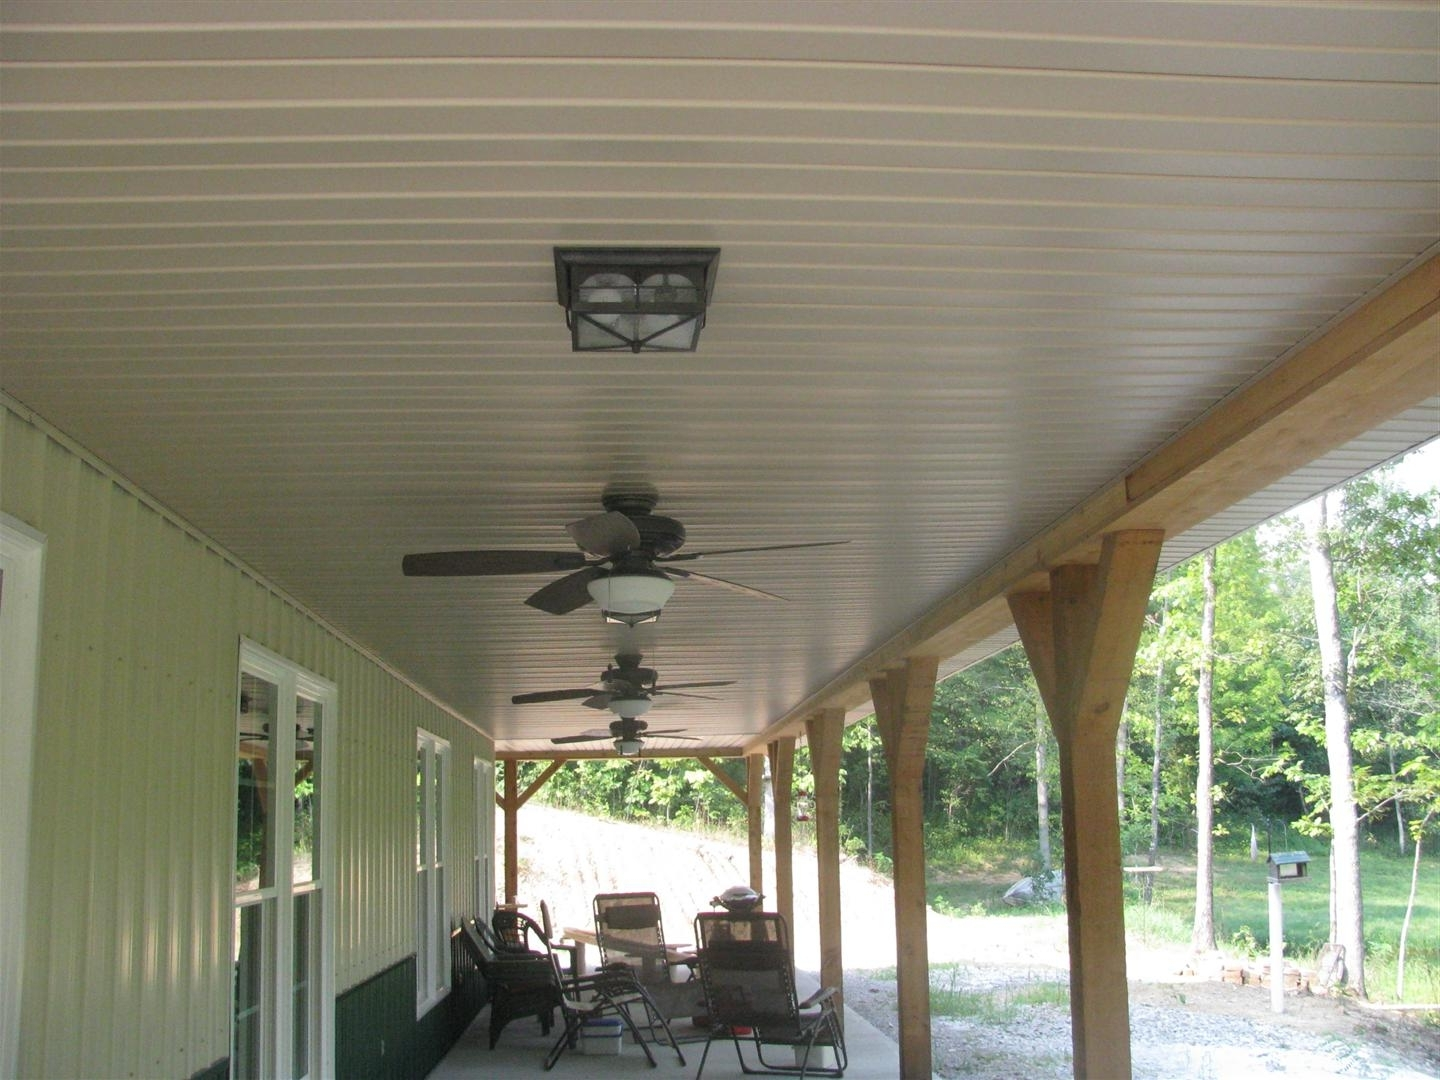 Ceiling Outdoor Lights For Front Porch Intended For Well Liked Outdoor Lighting: Astounding Front Porch Ceiling Light Outdoor (View 9 of 20)